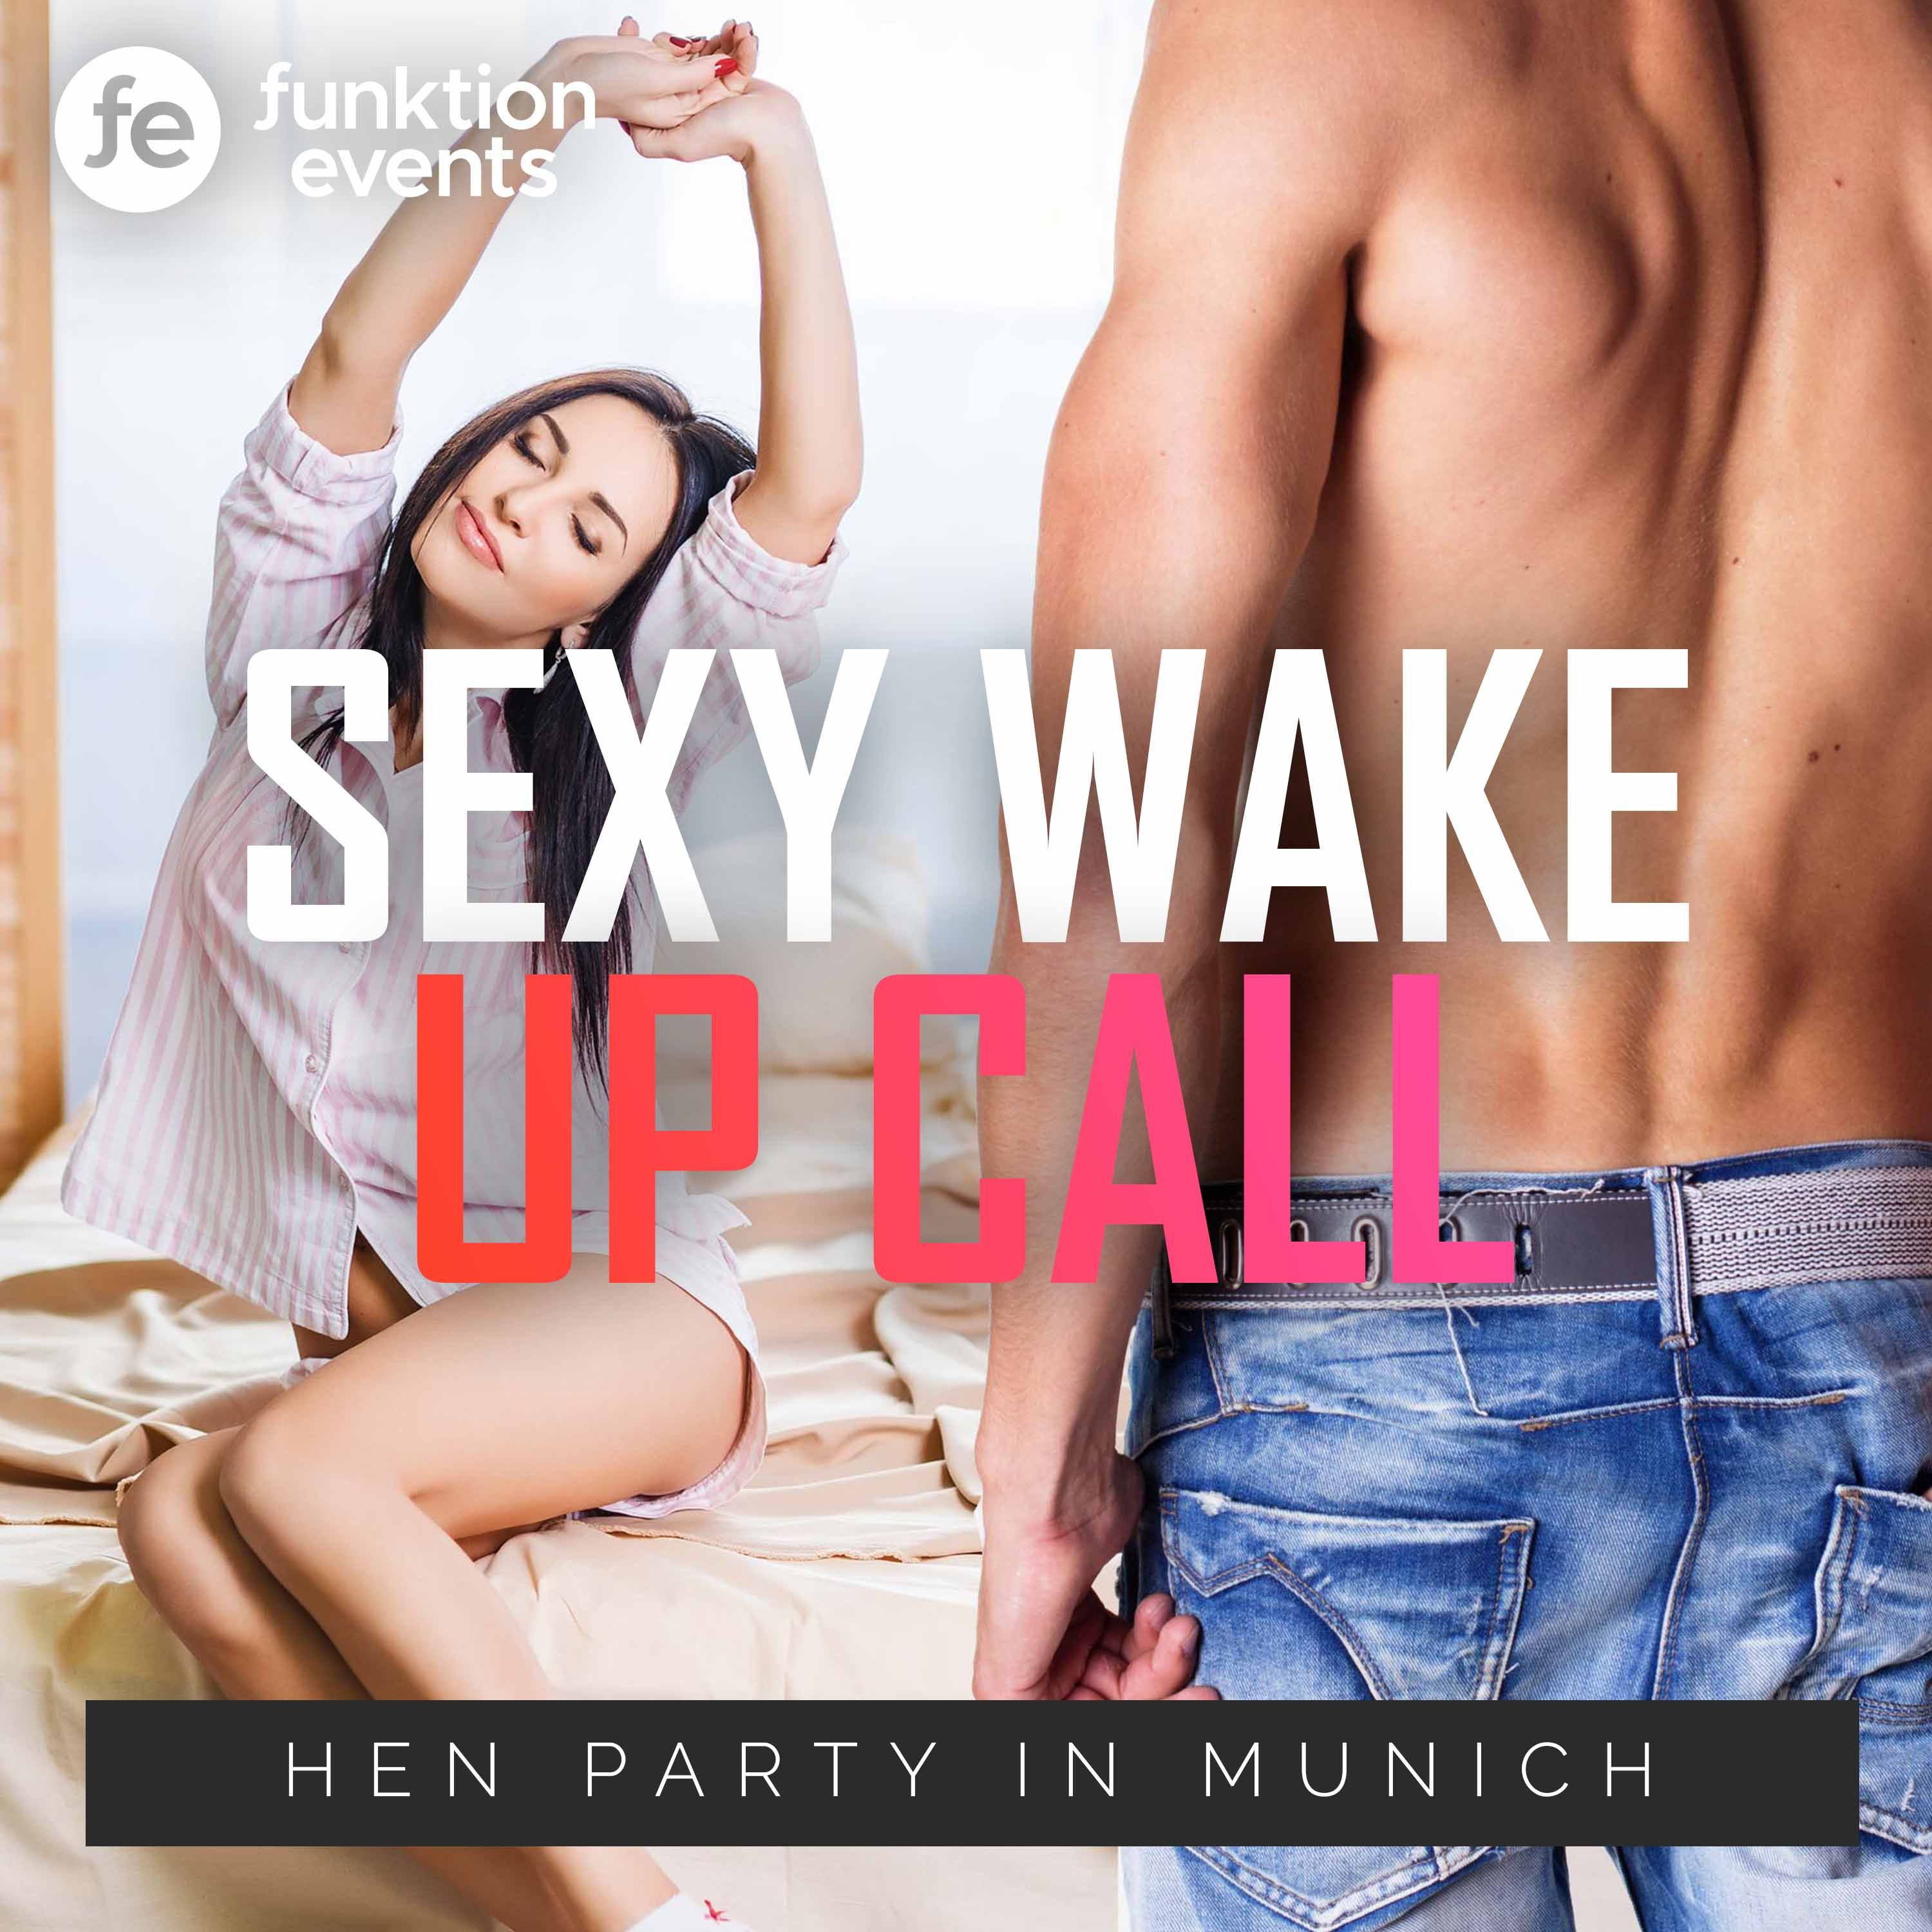 Add some excitement from the very beginning of the day with the sexy wake up call hen party in Munich, the perfect hen party activity to include for a very special soon to be wed hen! #hendoideas #henpartyactivities #henpartyideas #henpartyplanning #henpartyabroad #henpartyoverseas #henpartymunich #munich #stripper #malestripper #sexywakeupcall #munichhenparty #thingstodoinmunich